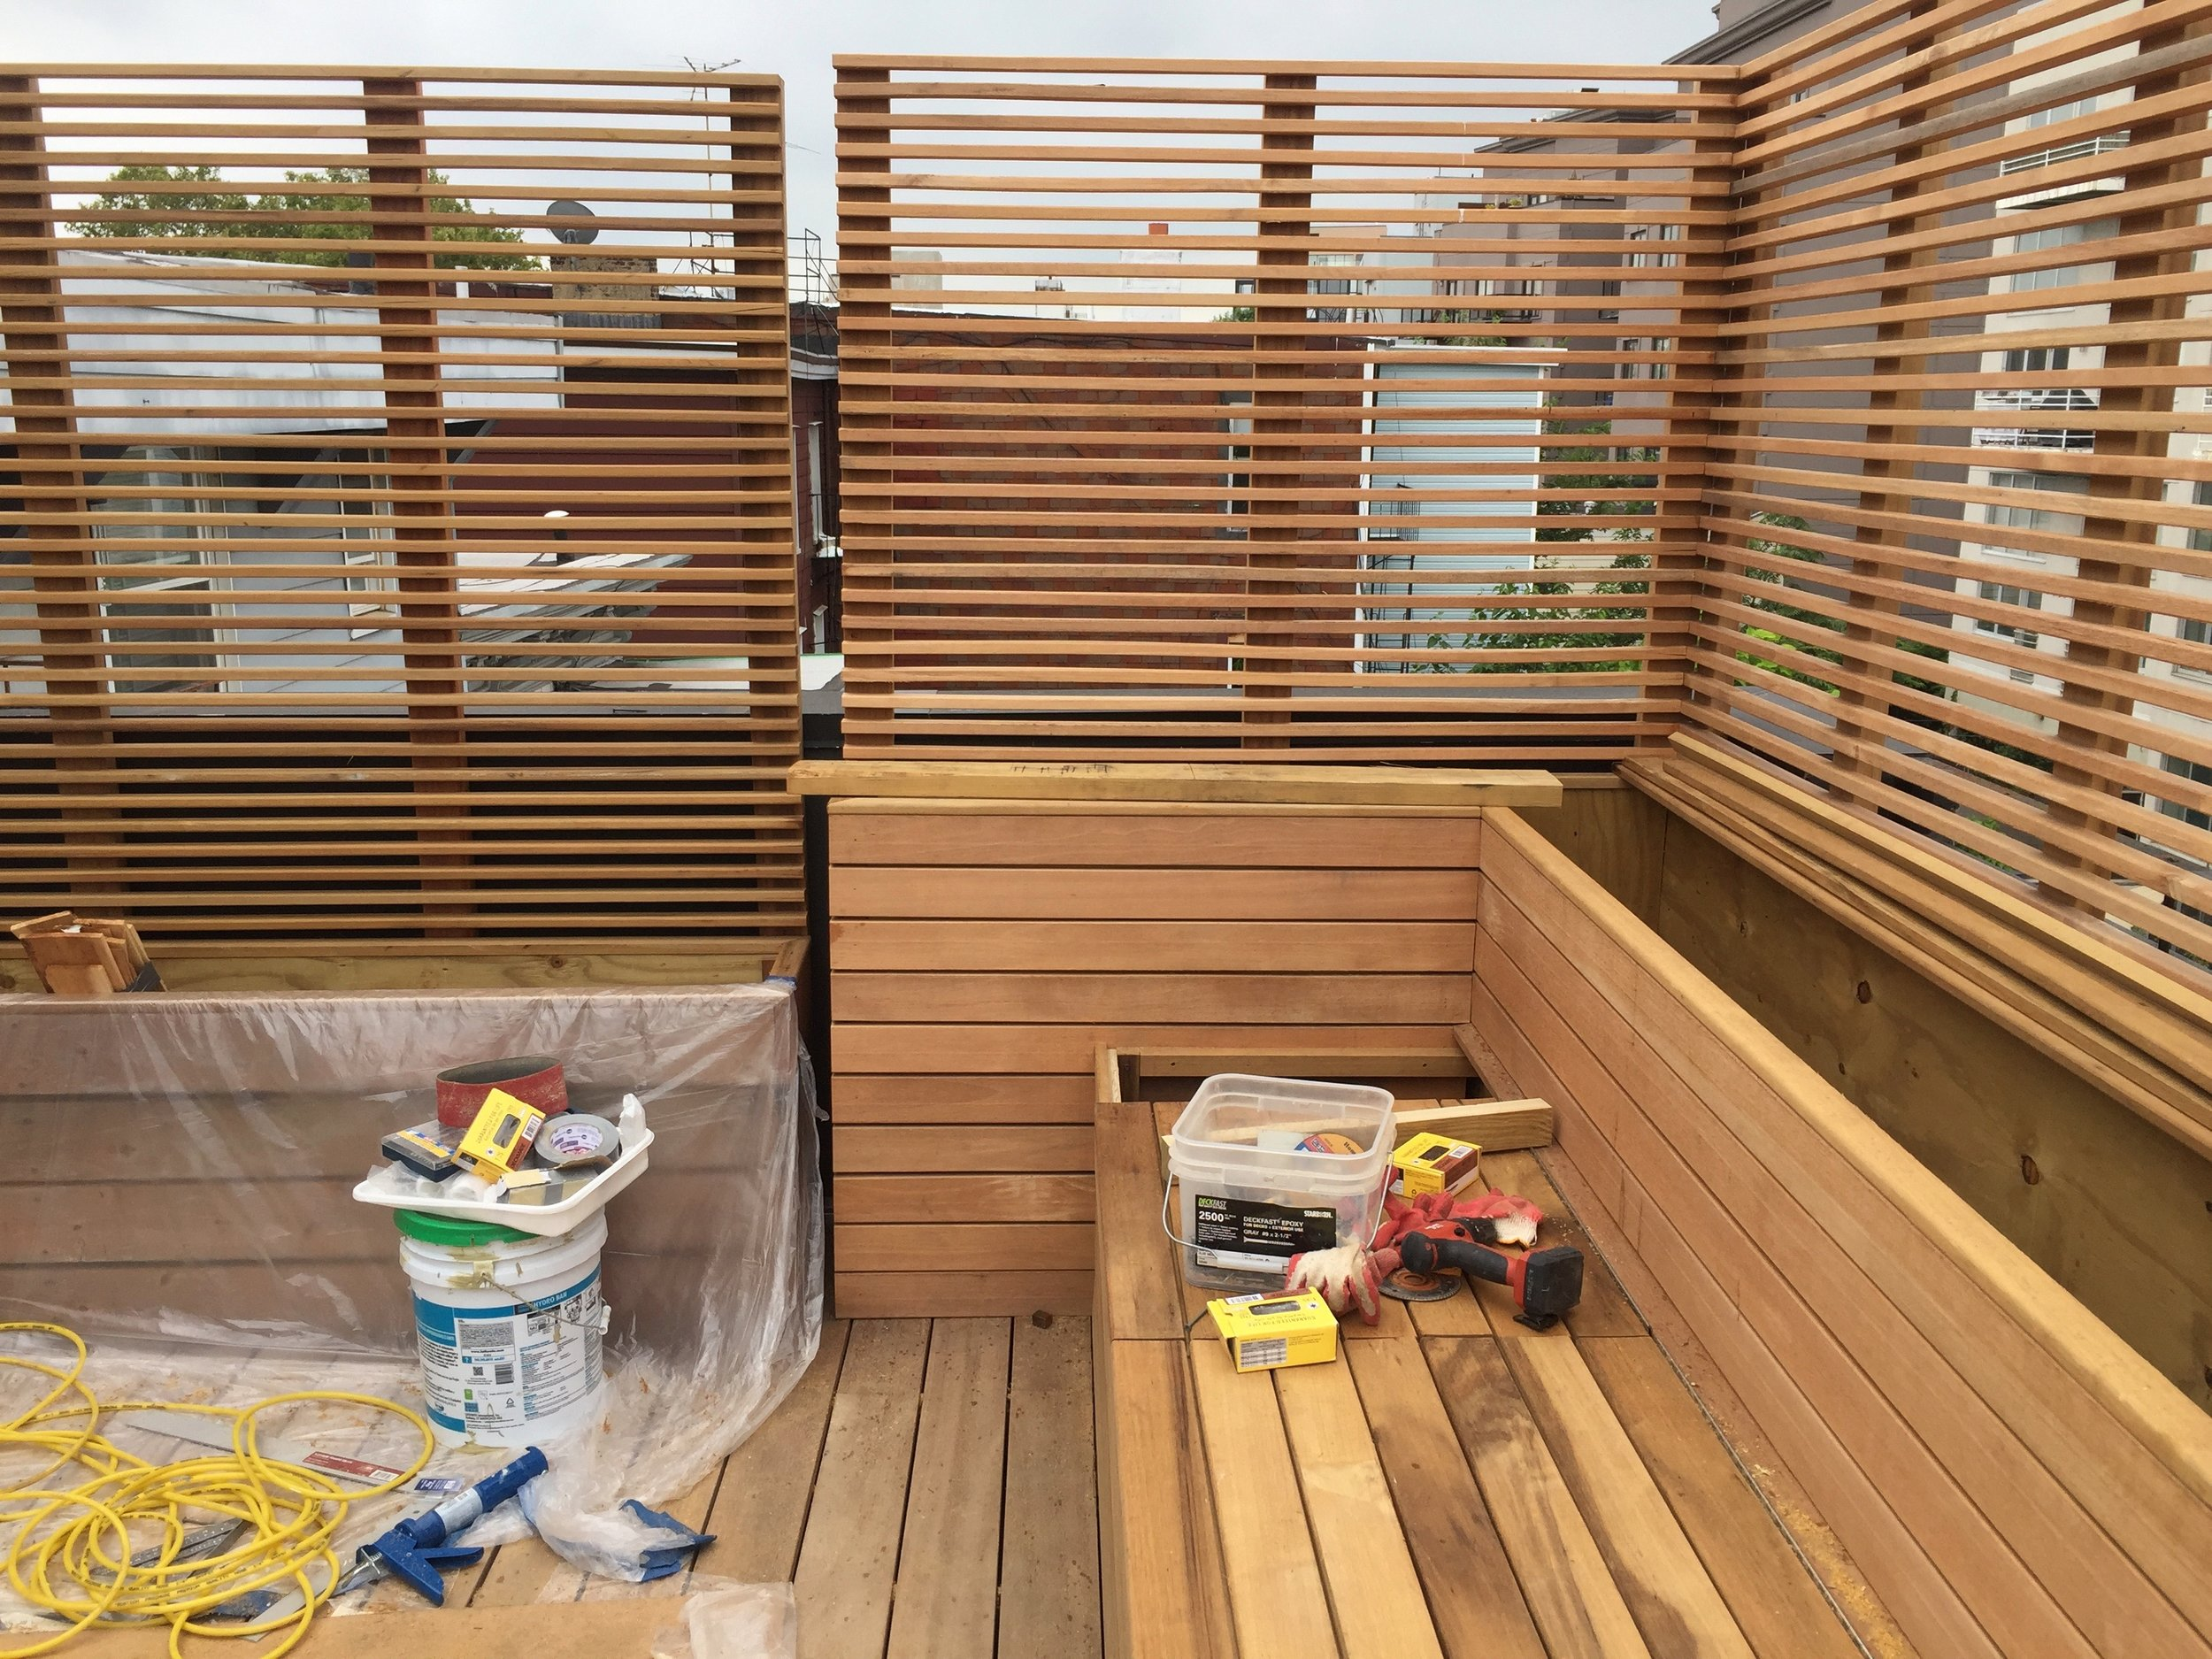 A New York residence gets a new custom deck as part of a full residential remodel